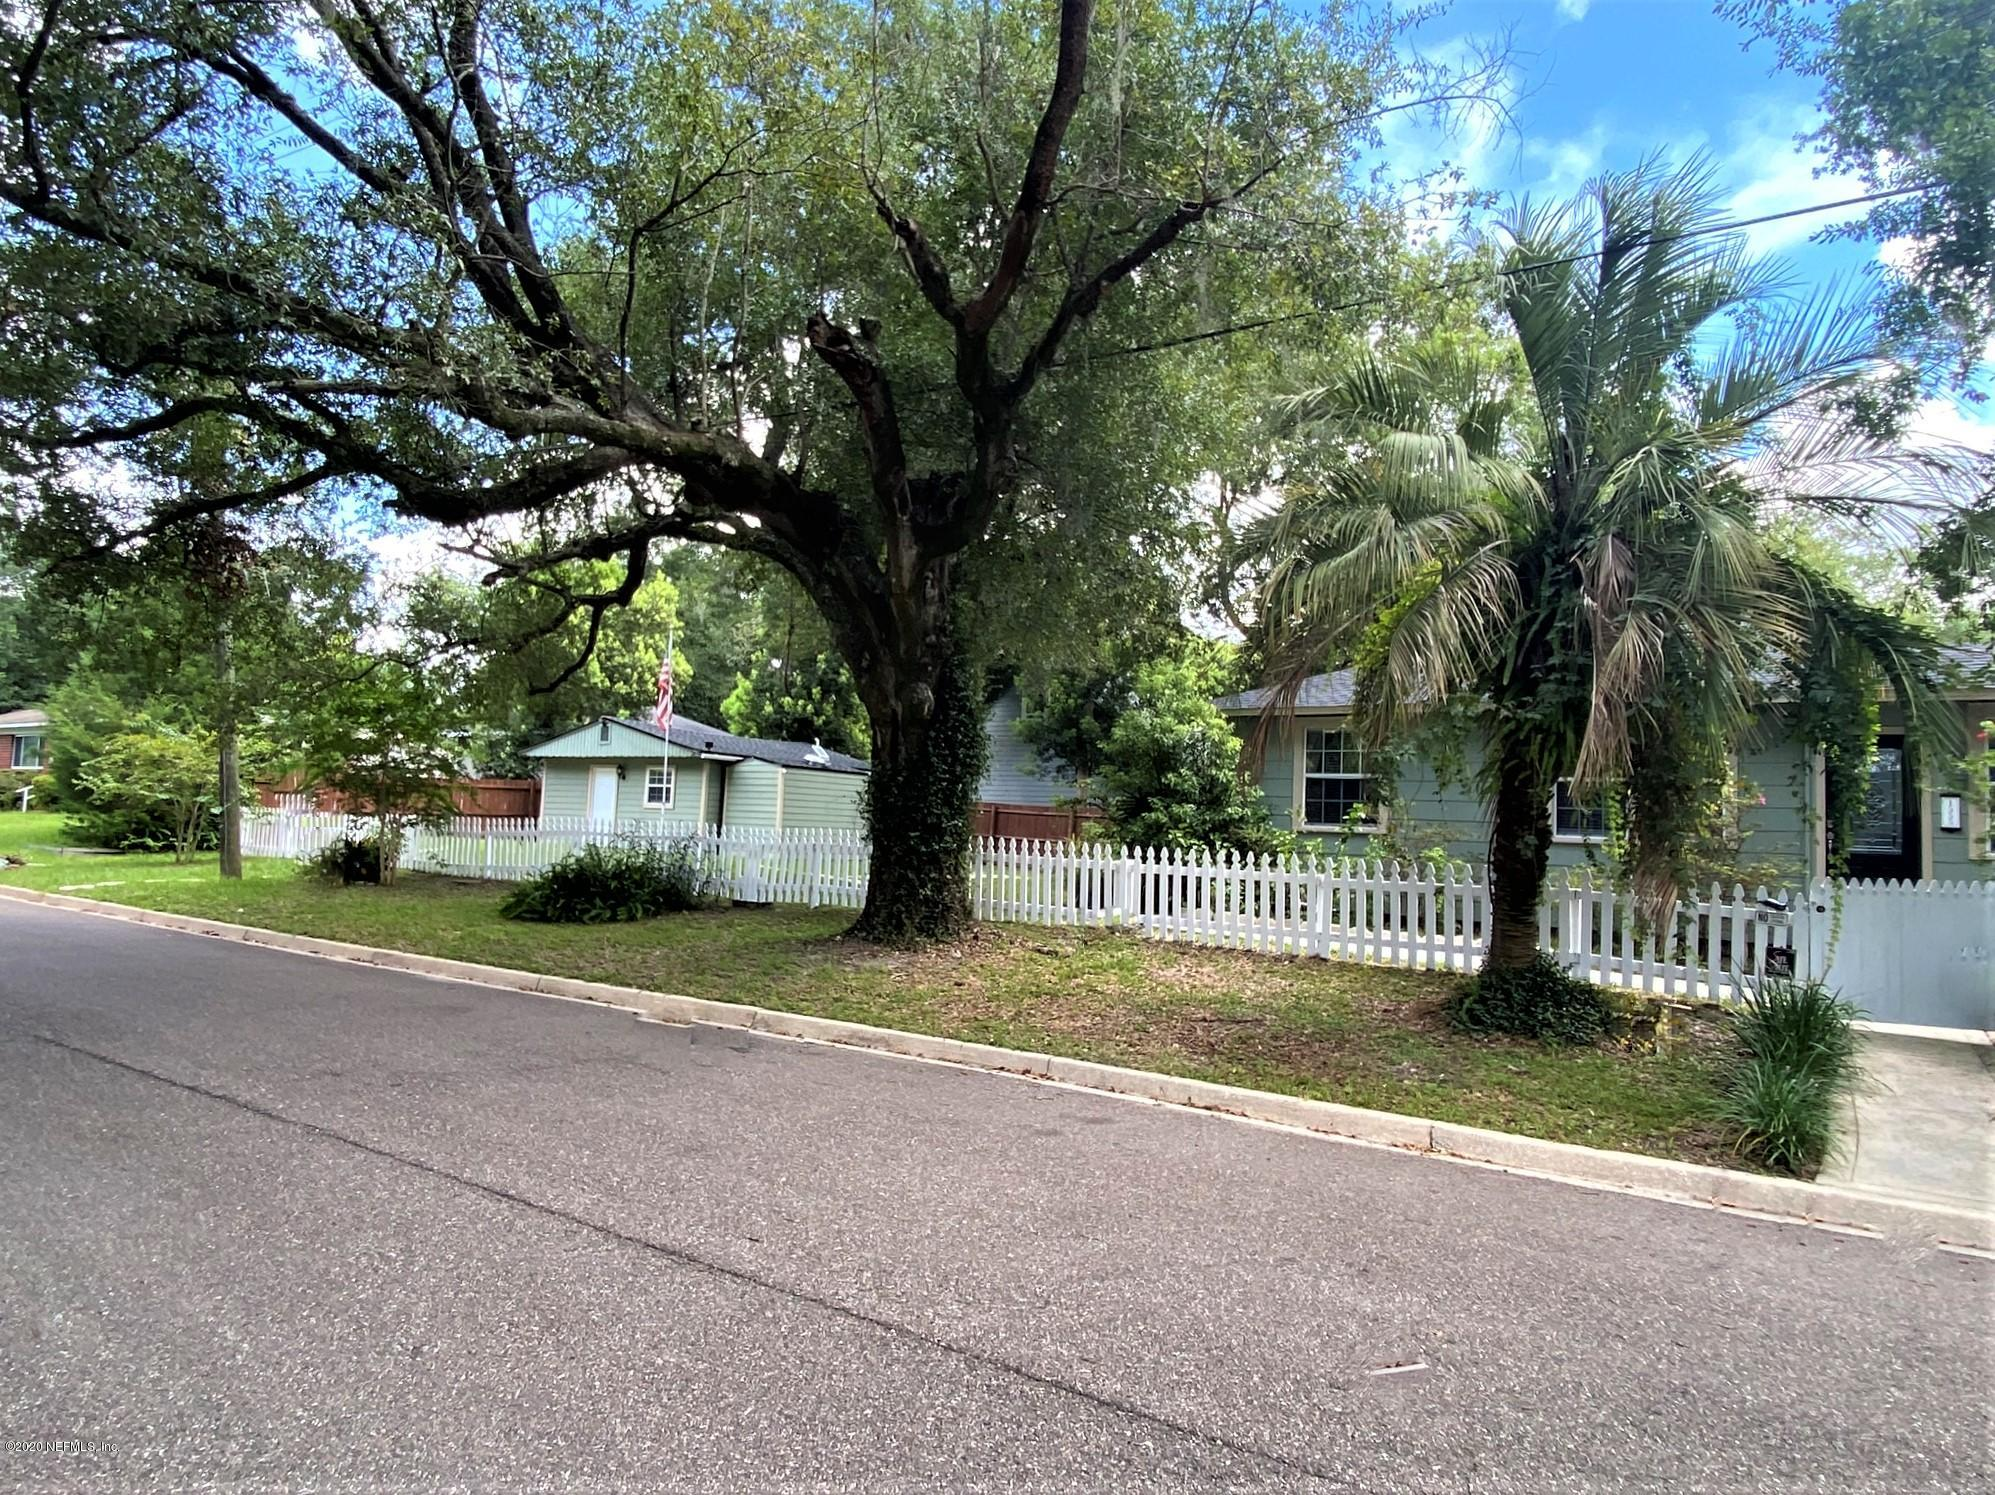 1555 PINE GROVE, JACKSONVILLE, FLORIDA 32205, 4 Bedrooms Bedrooms, ,2 BathroomsBathrooms,Investment / MultiFamily,For sale,PINE GROVE,1064152